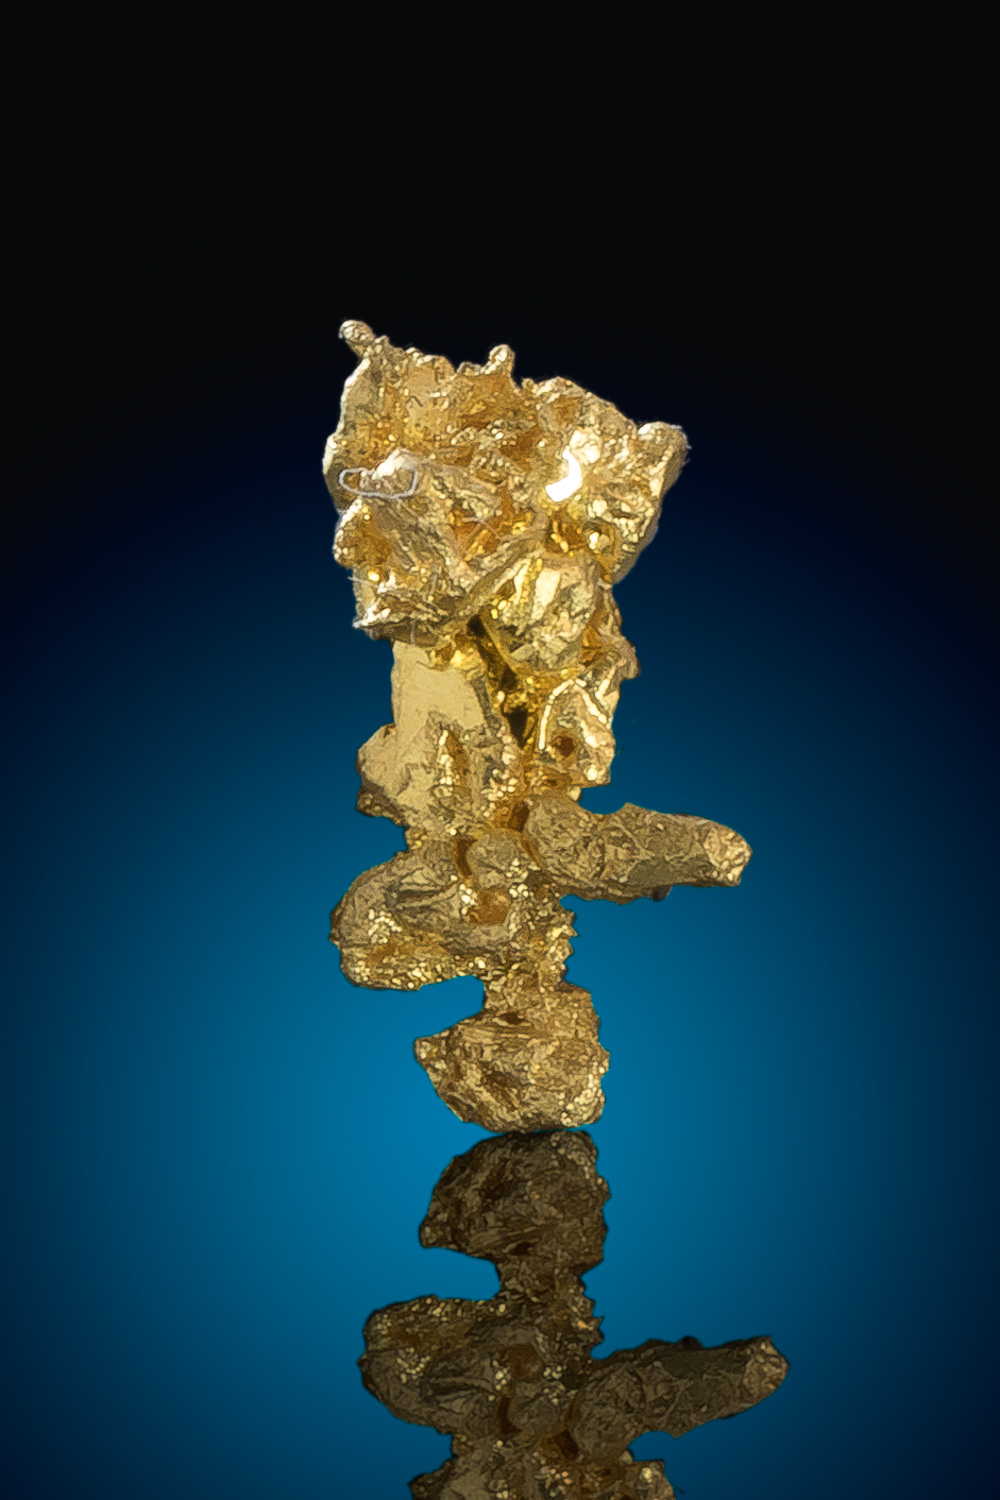 Intricate Crystalline Gold Nugget - Eagles Nest Gold Mine